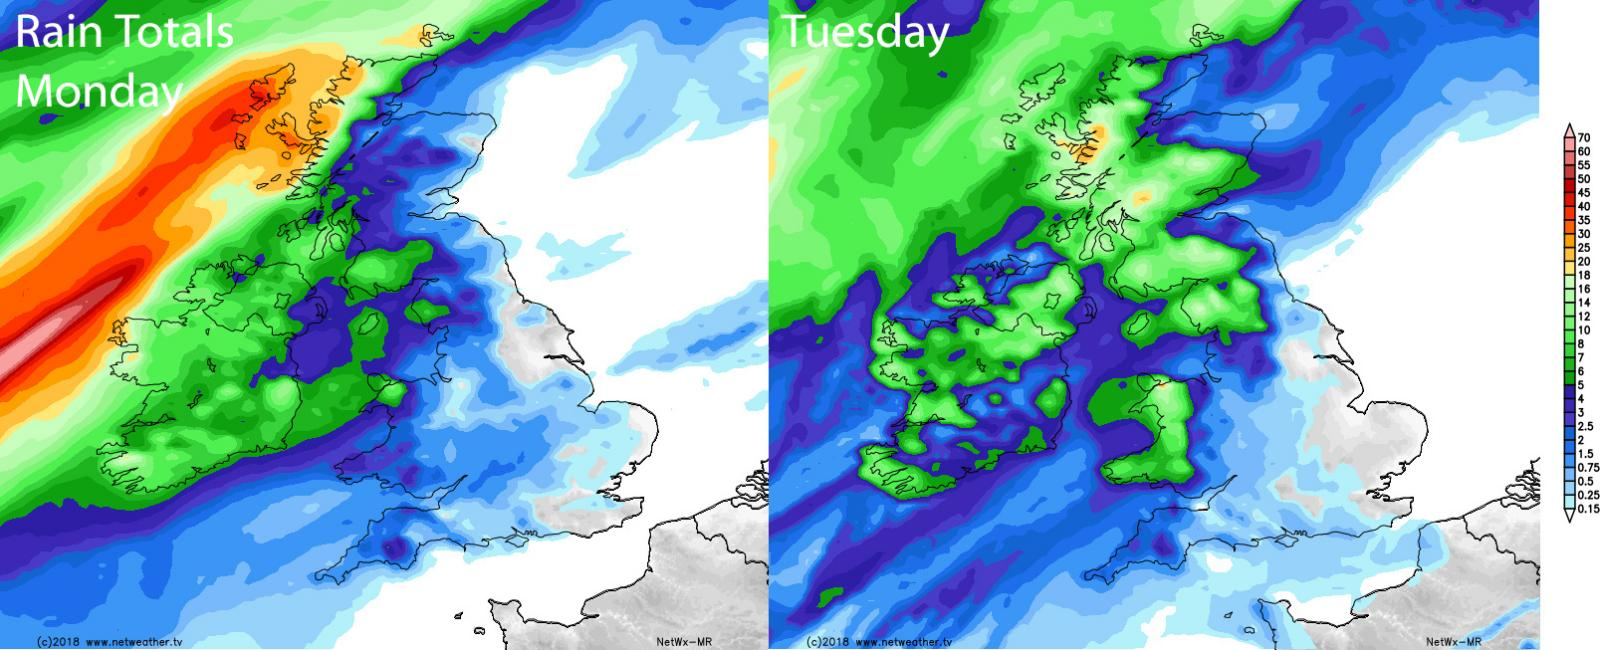 Rain totals on Monday and Tuesday - wettest in the northwest